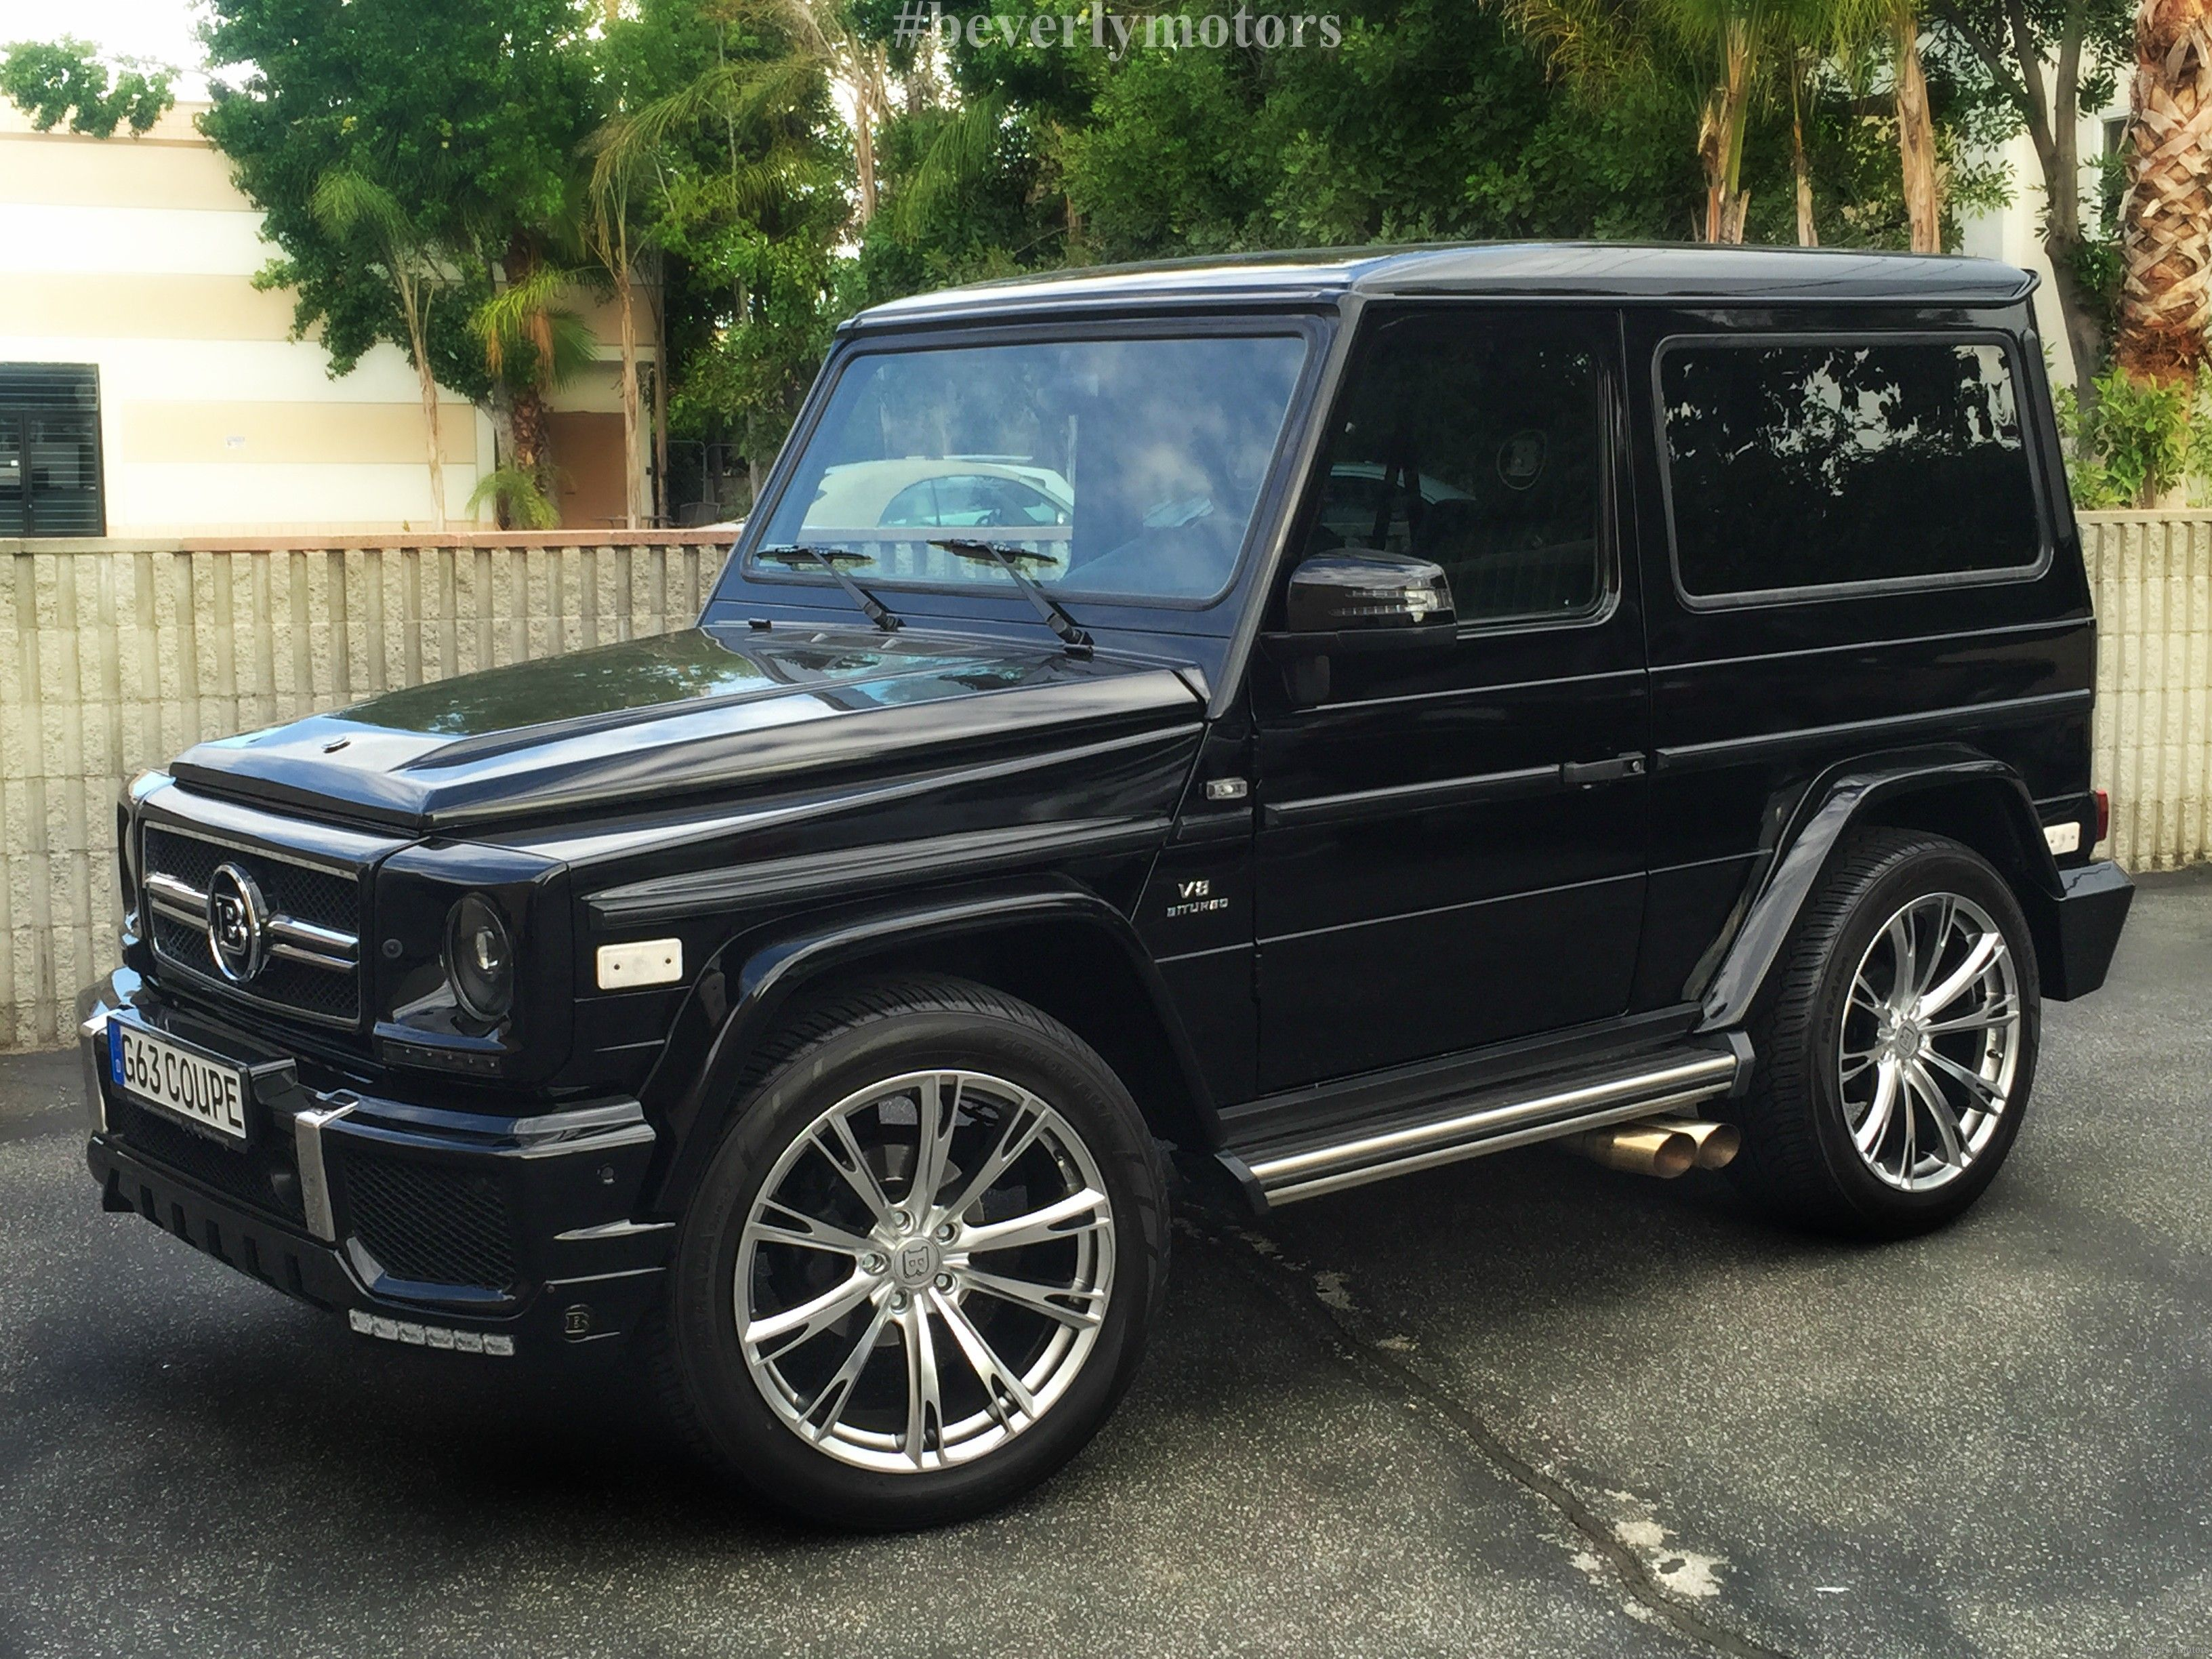 2001 Mercedes Benz G320 Coupe G63 Brabus Black On Black G55 G550